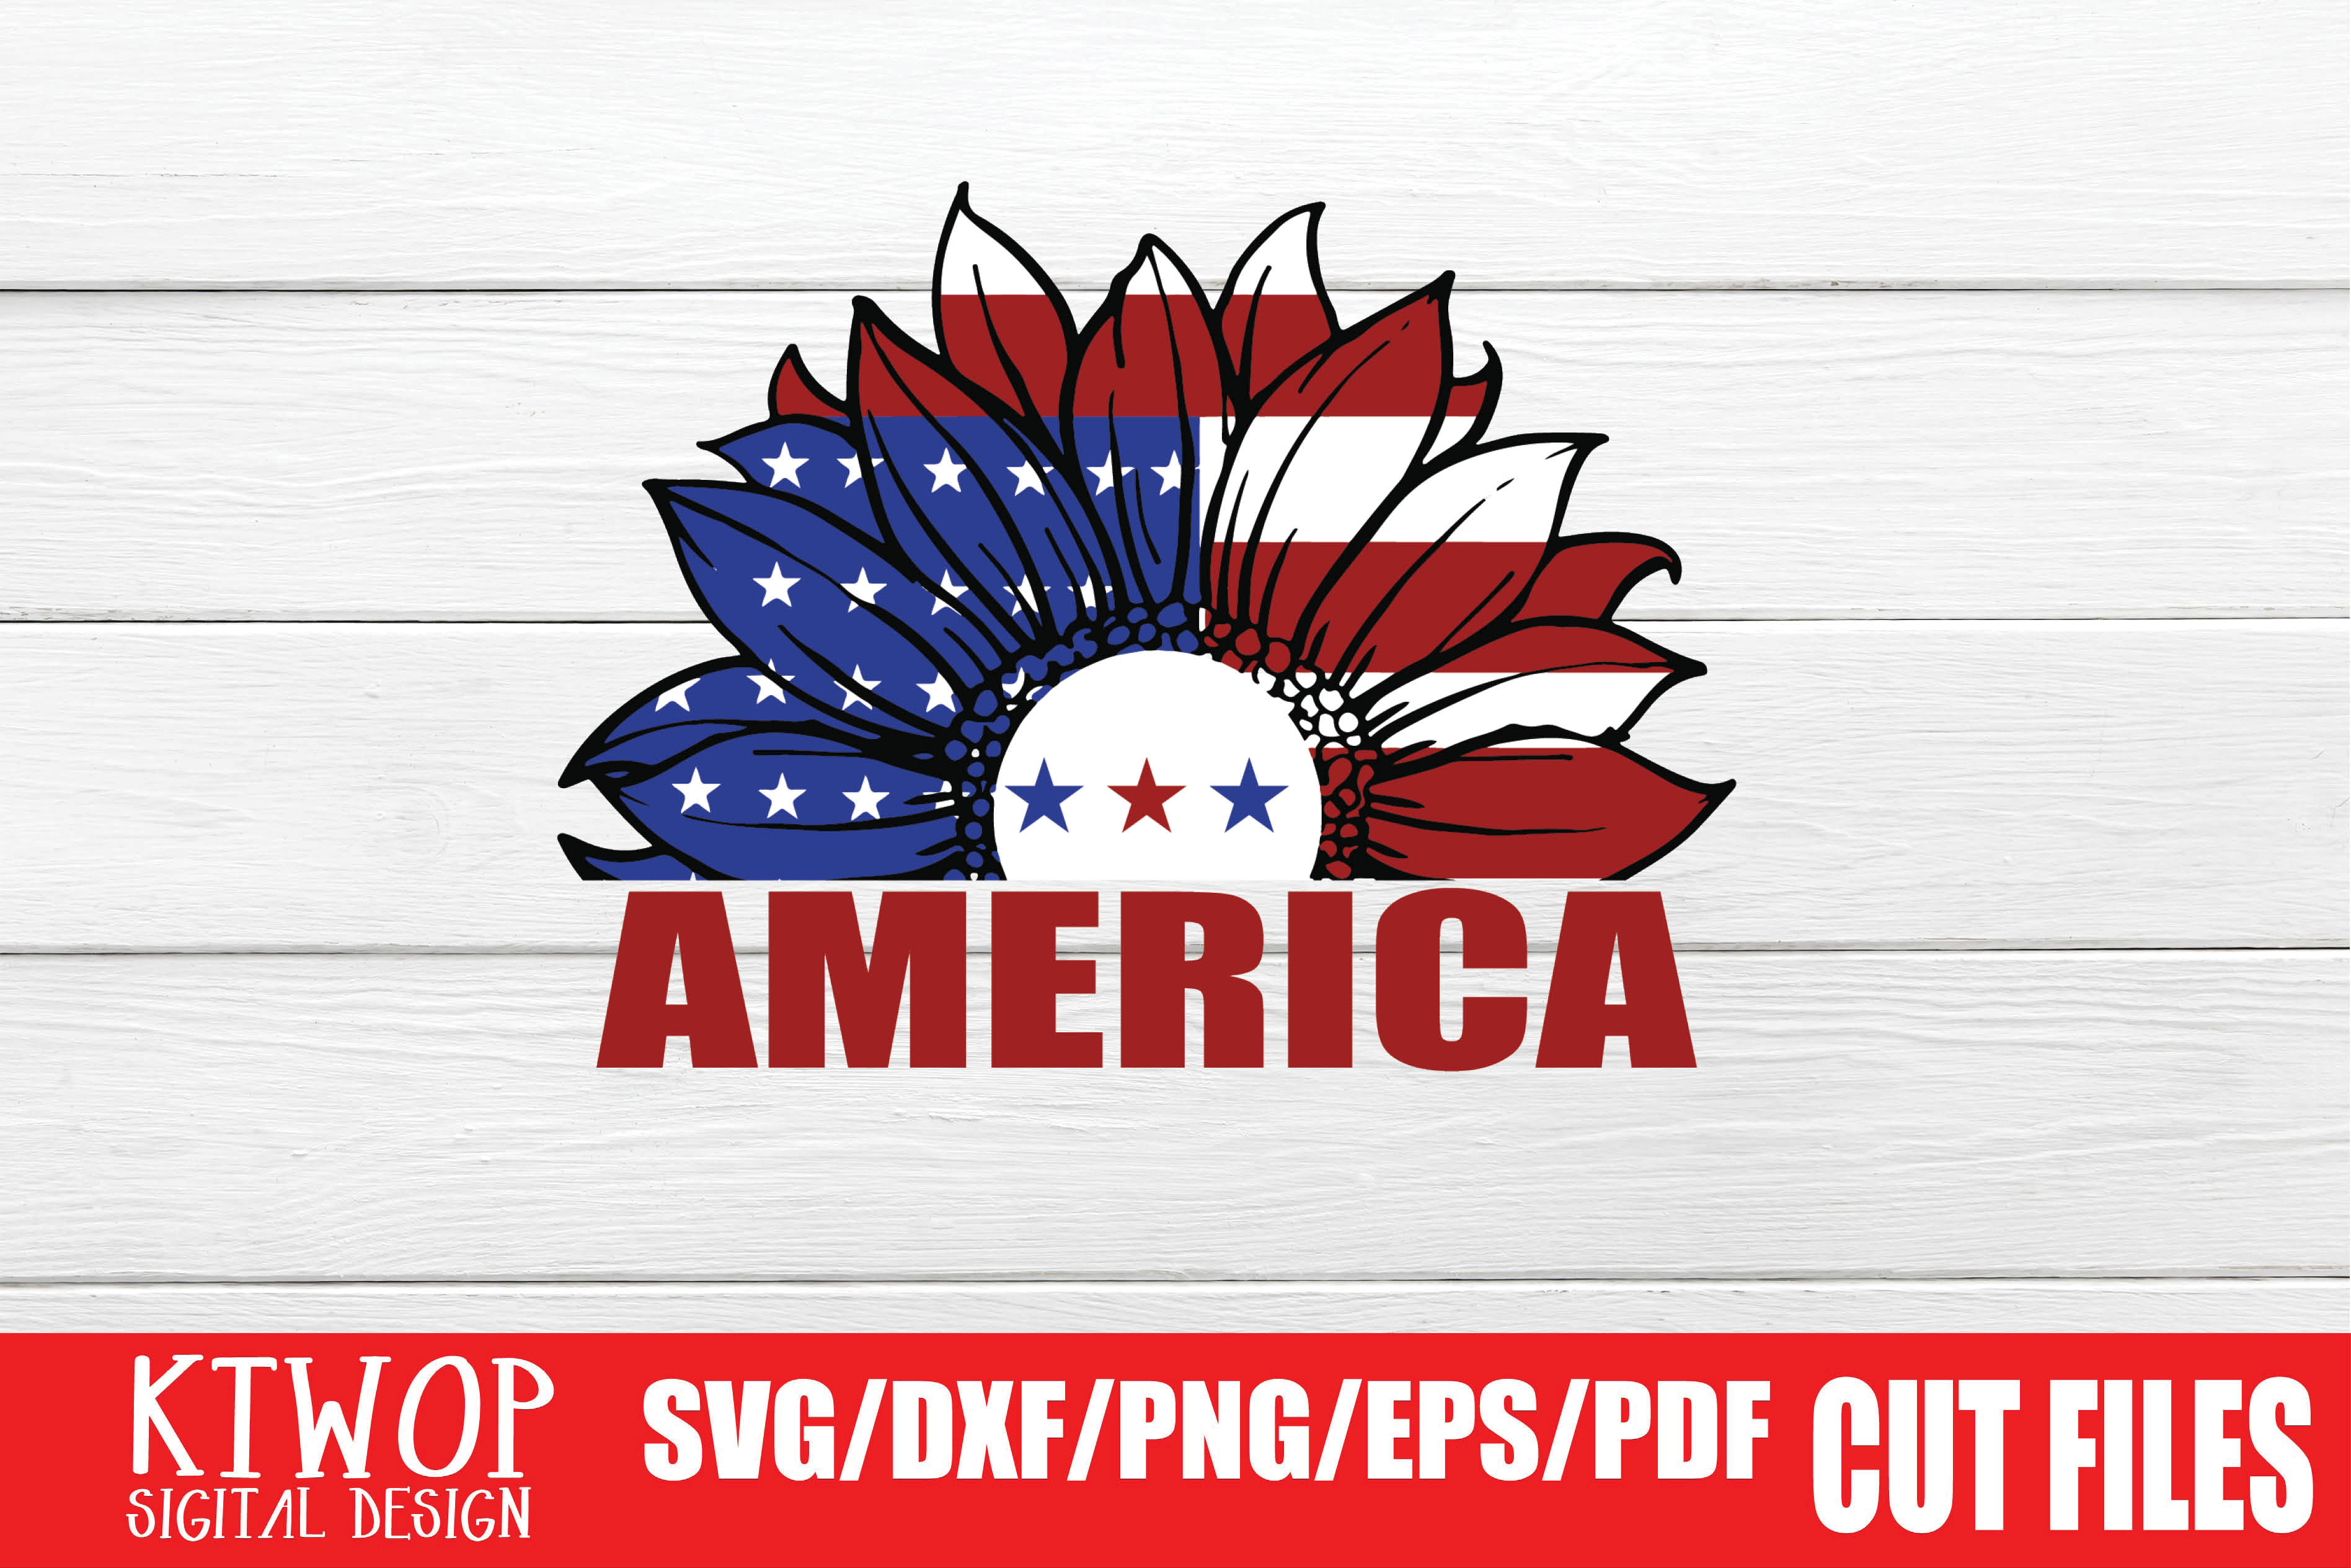 Download Free America Graphic By Ktwop Creative Fabrica for Cricut Explore, Silhouette and other cutting machines.